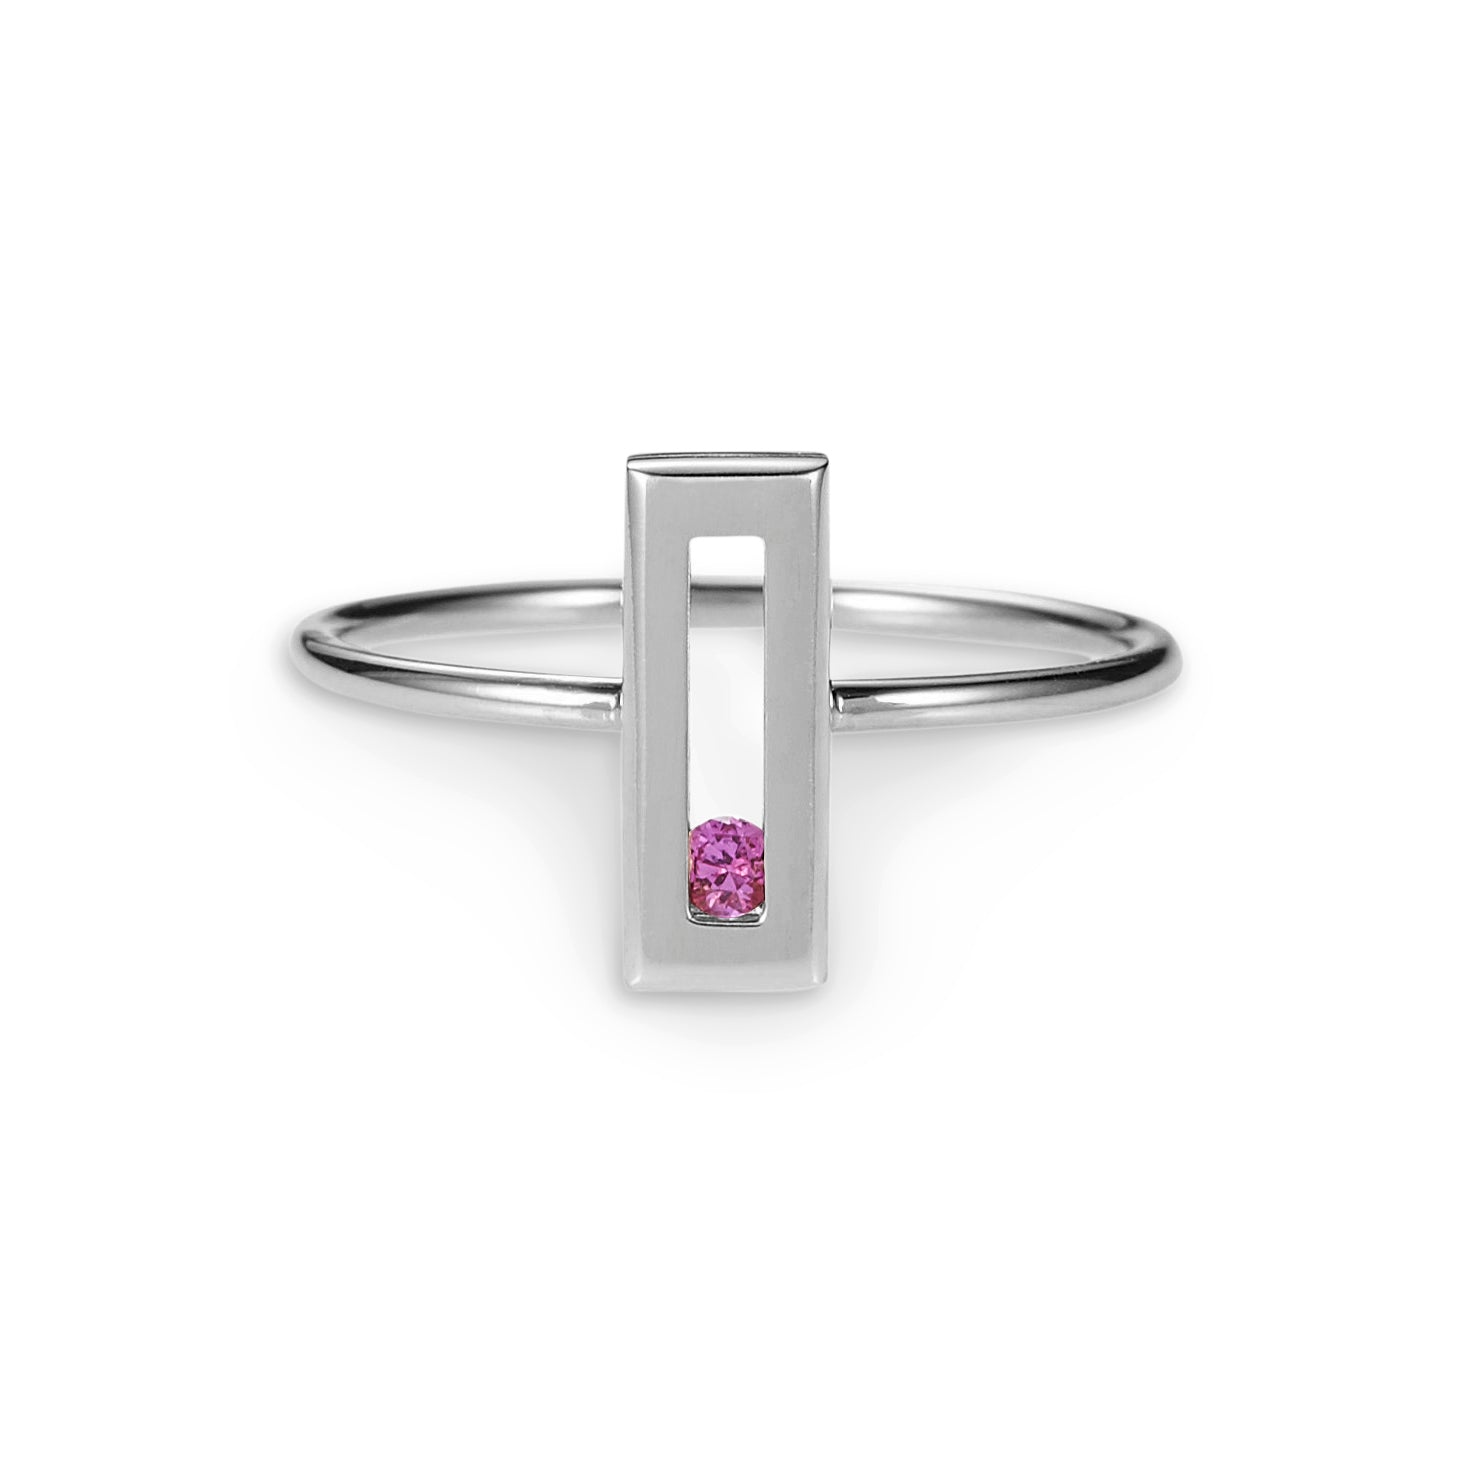 Luke Rose Jewellery silver pink sapphire stack ring